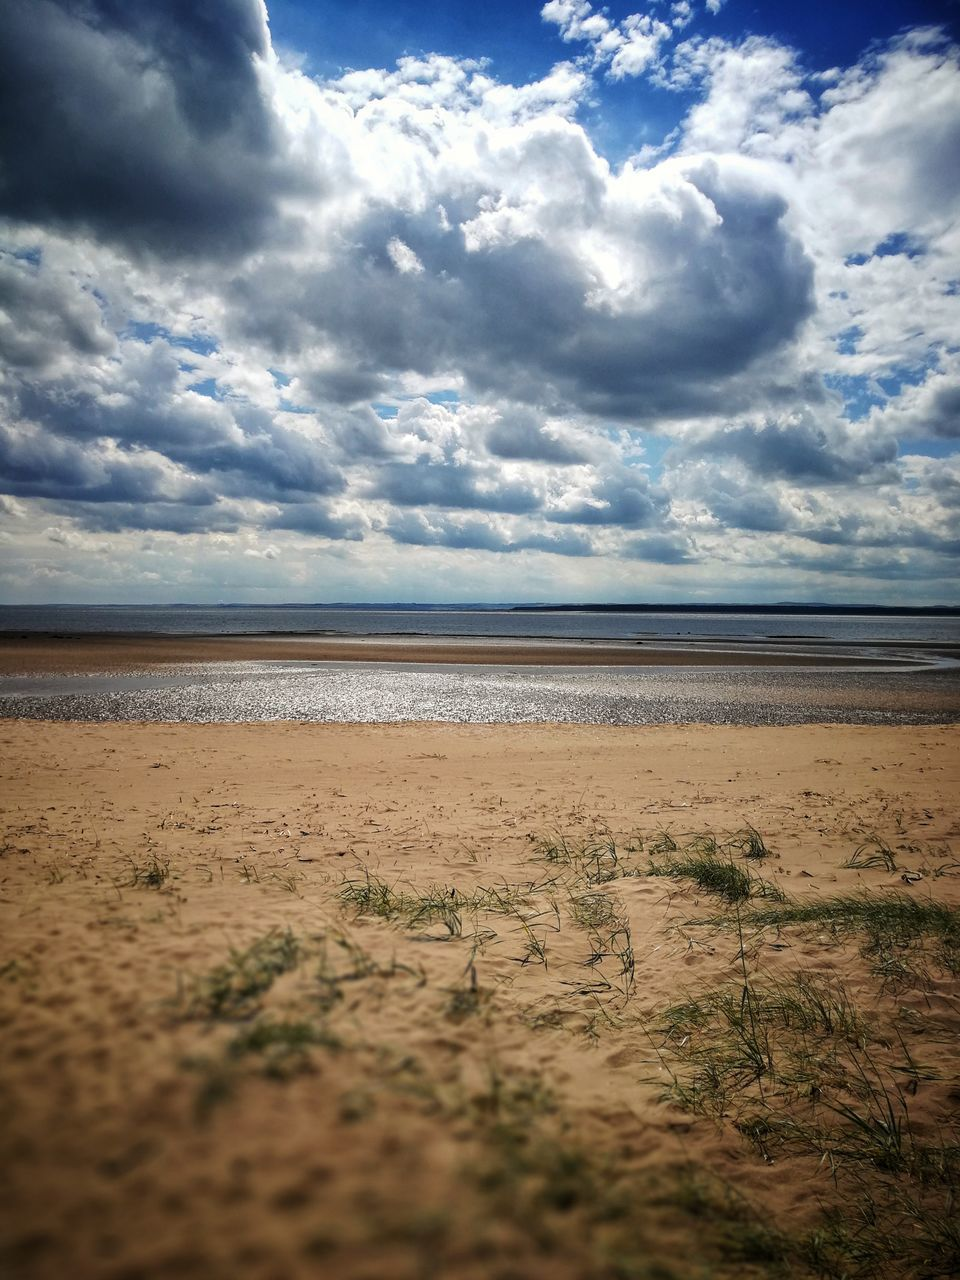 cloud - sky, sky, sand, beach, nature, beauty in nature, scenics, tranquility, sea, tranquil scene, landscape, water, no people, day, outdoors, horizon over water